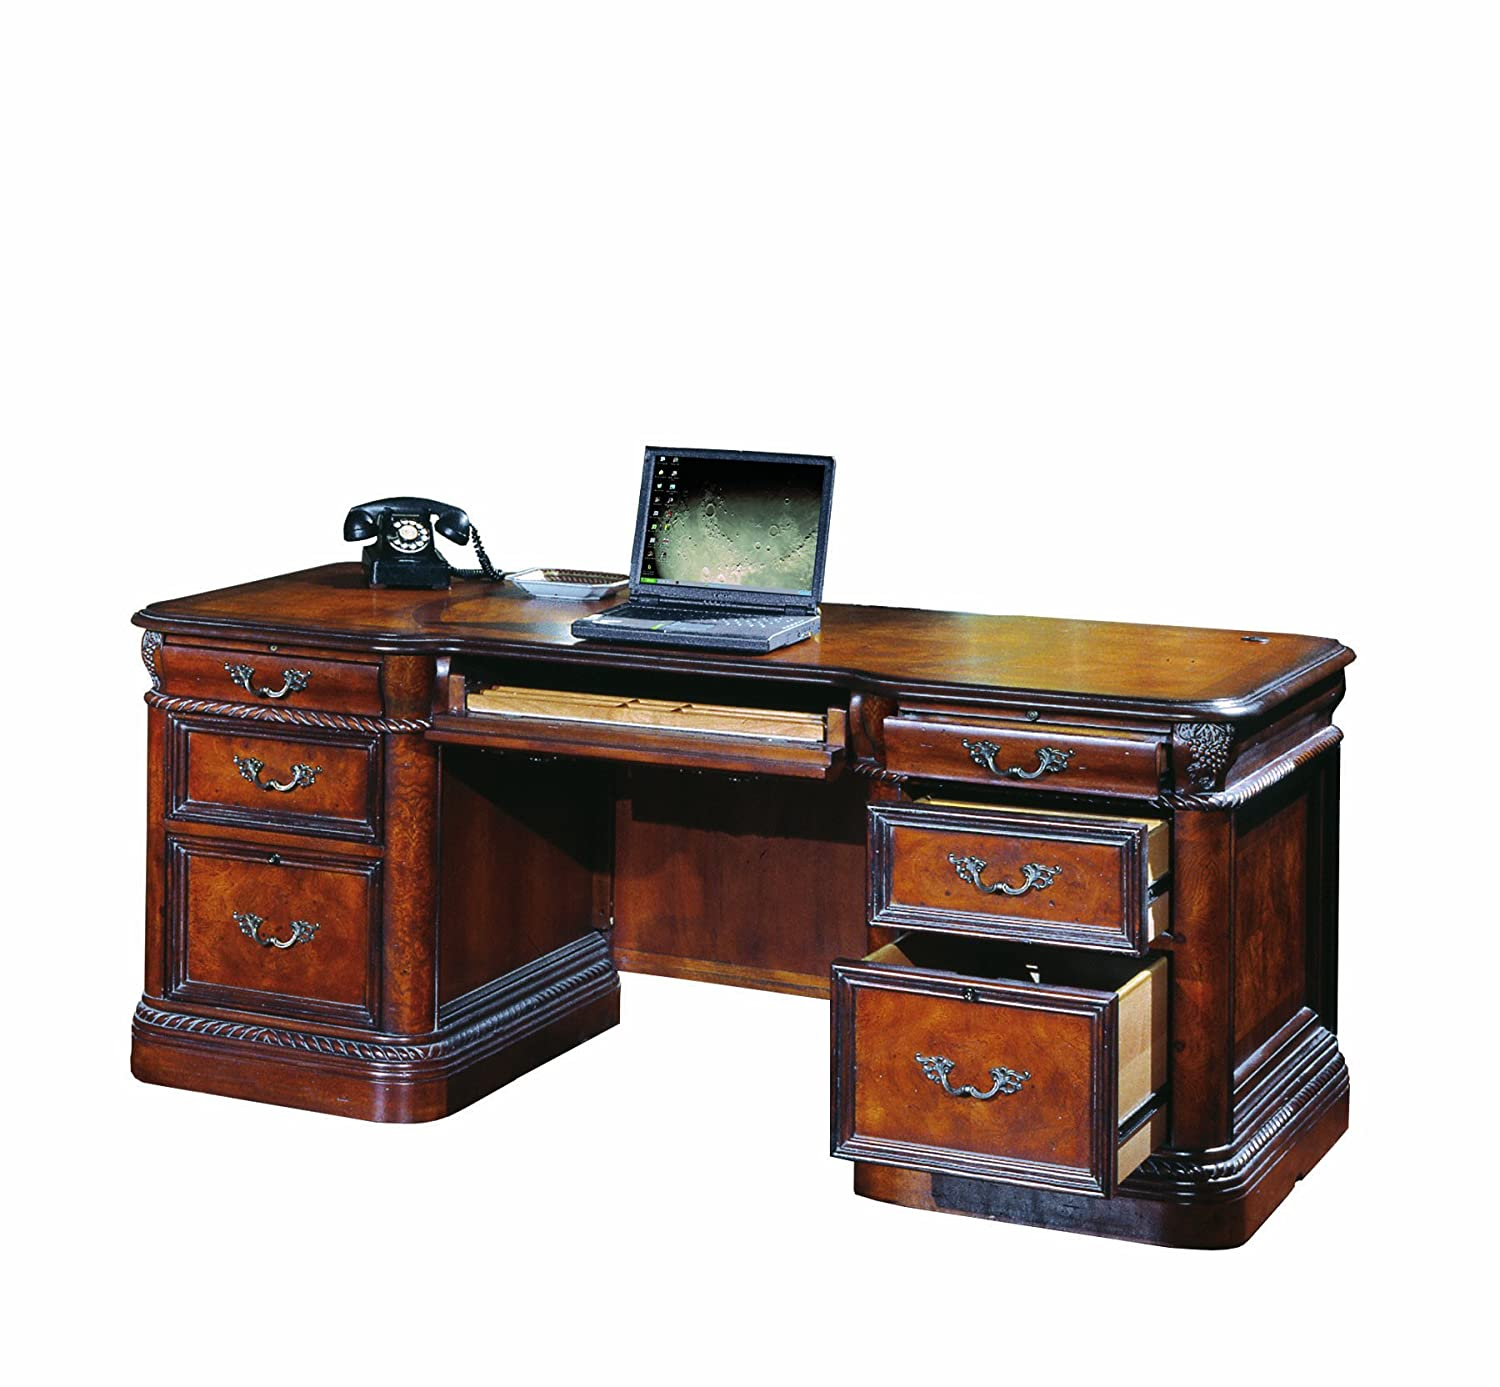 amazoncom vineyard italian style executive desk home office computer furniture kitchen dining